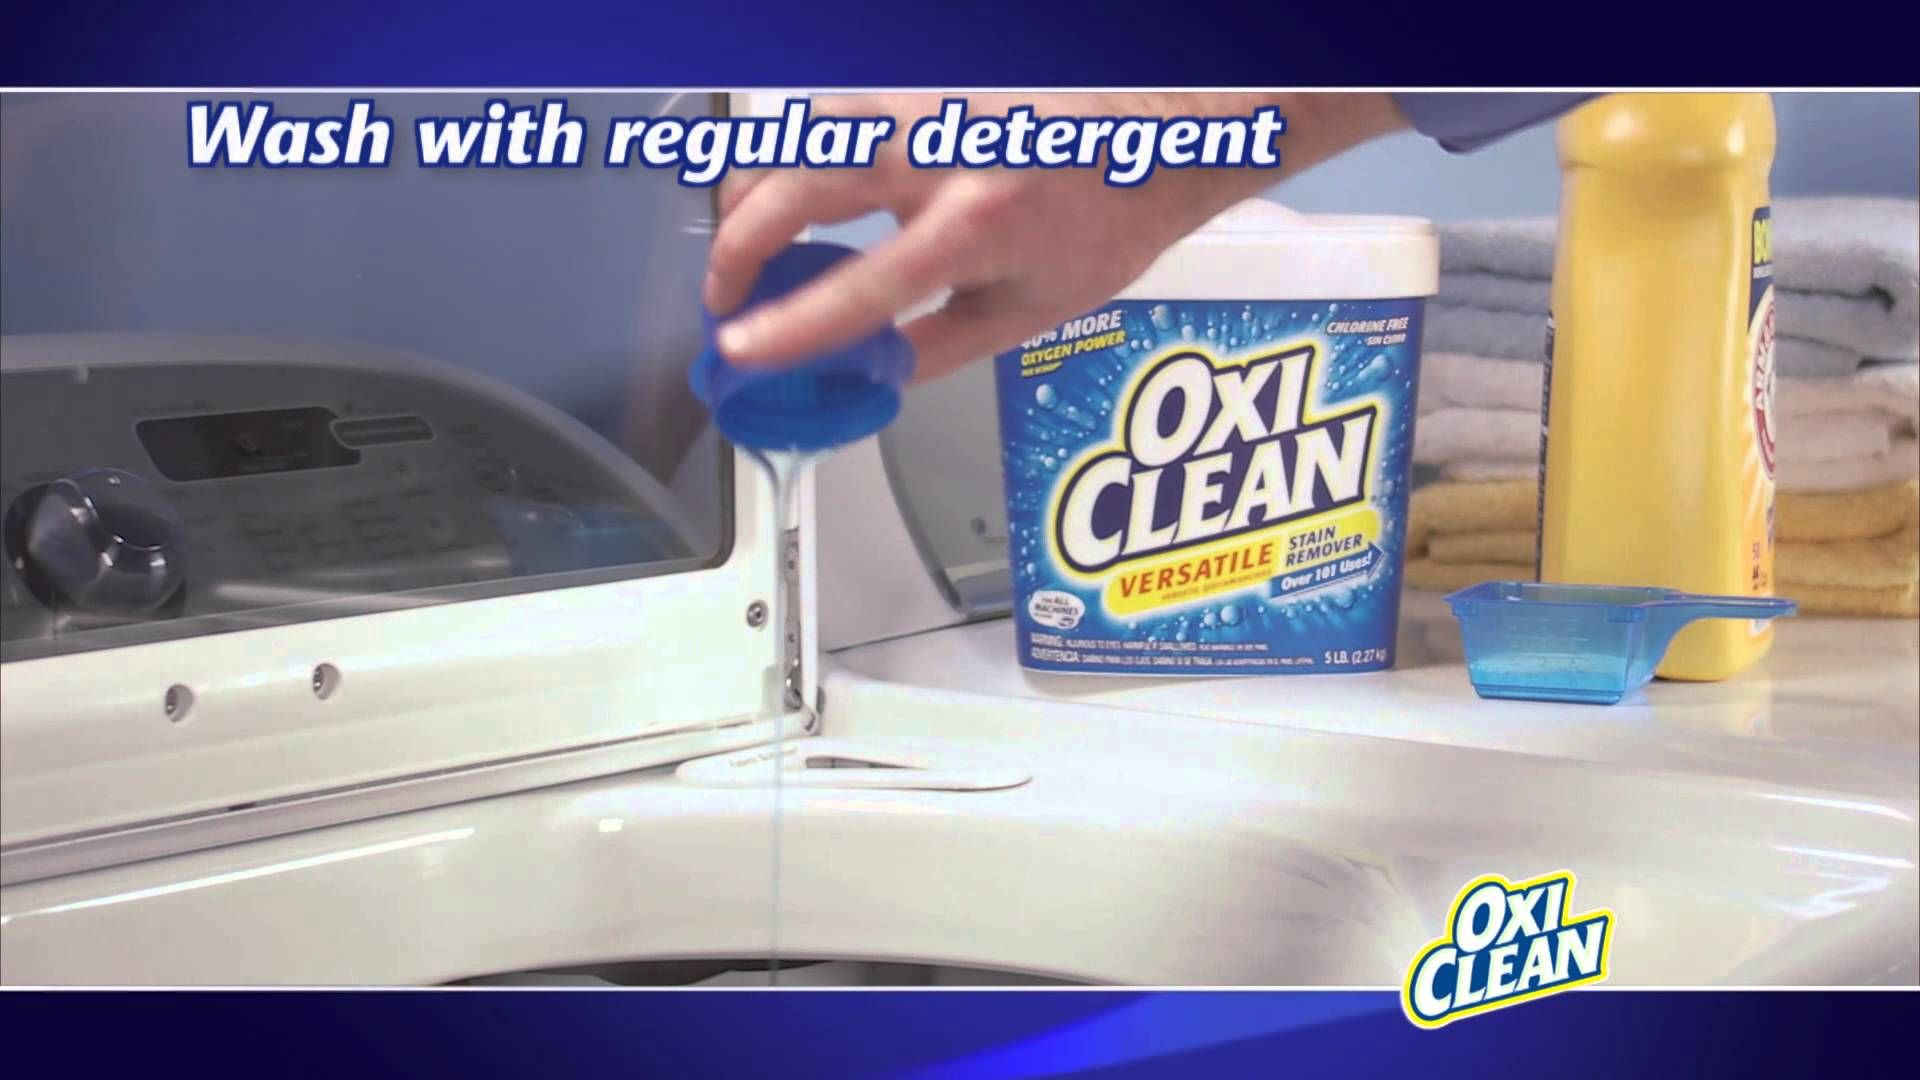 How to remove chocolate stains with oxiclean stain